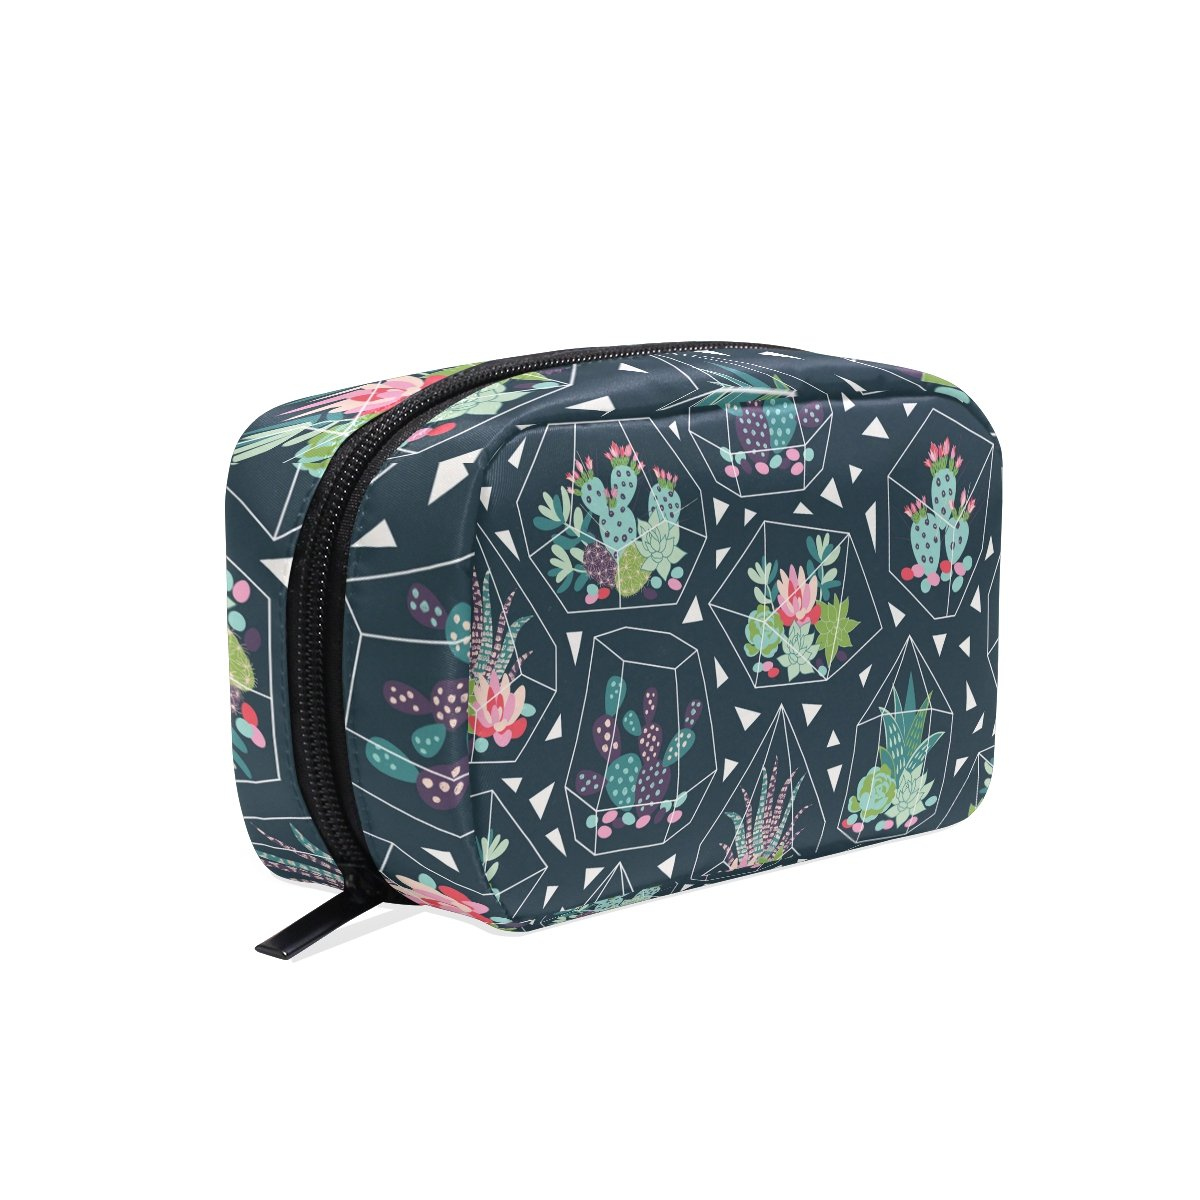 ALAZA Durable Cactus Pattern Beauty And Make Up Cosmetics Pouch/Bag/Case for Makeup Utensils And Toiletries Twill fabric